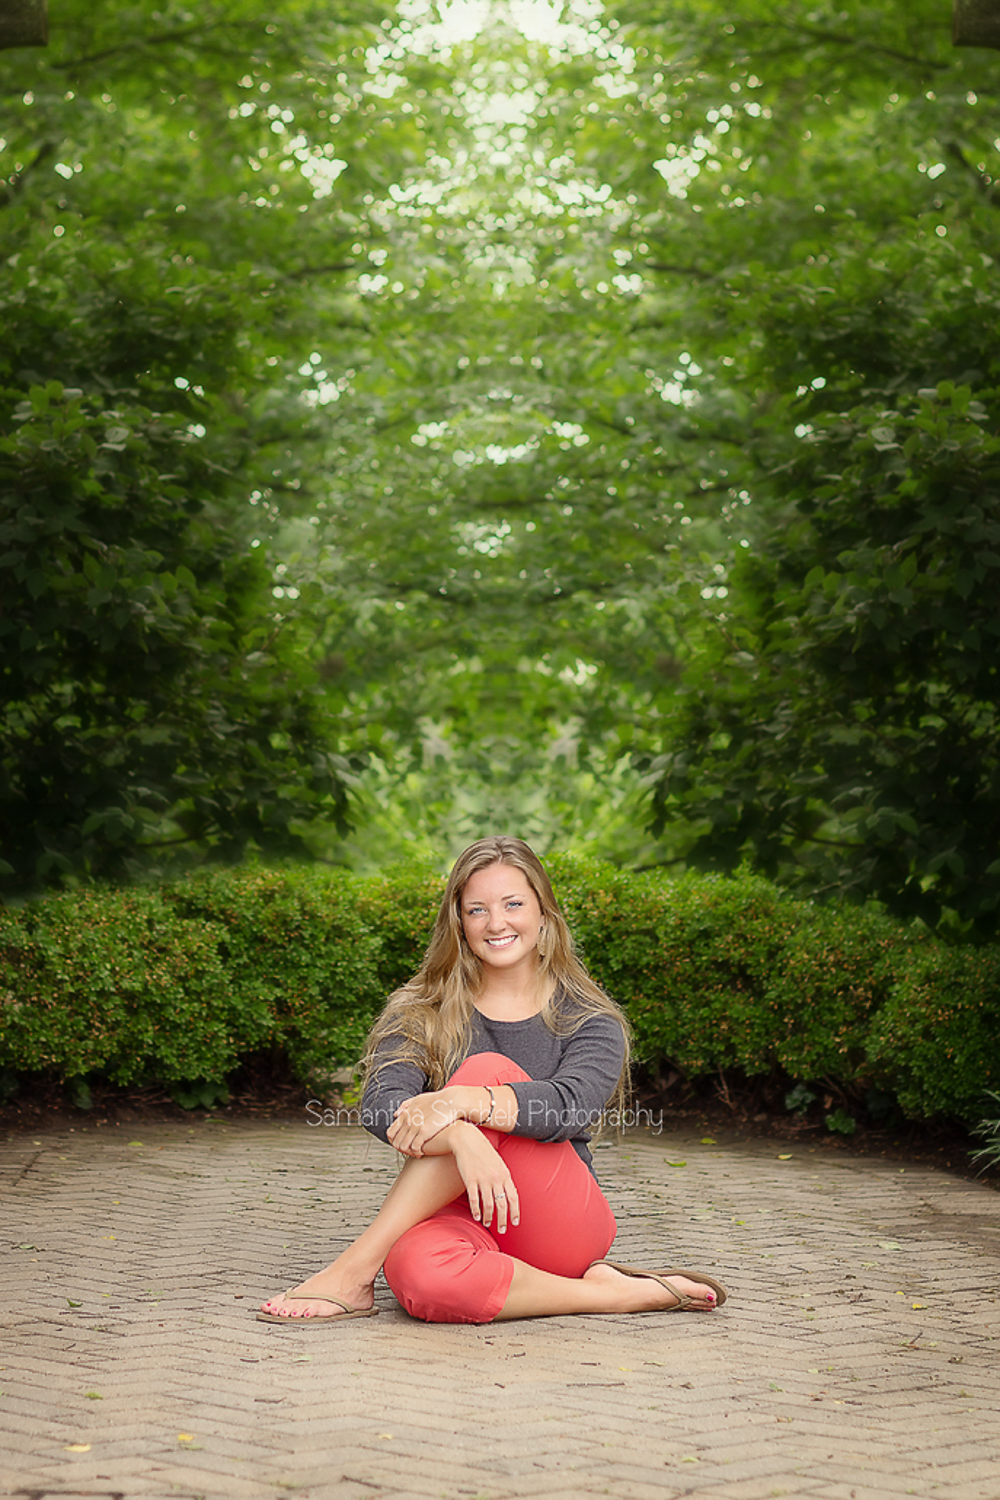 alyssa sits in a gazebo at Ault Park for a SENIOR PHOTO SESSION